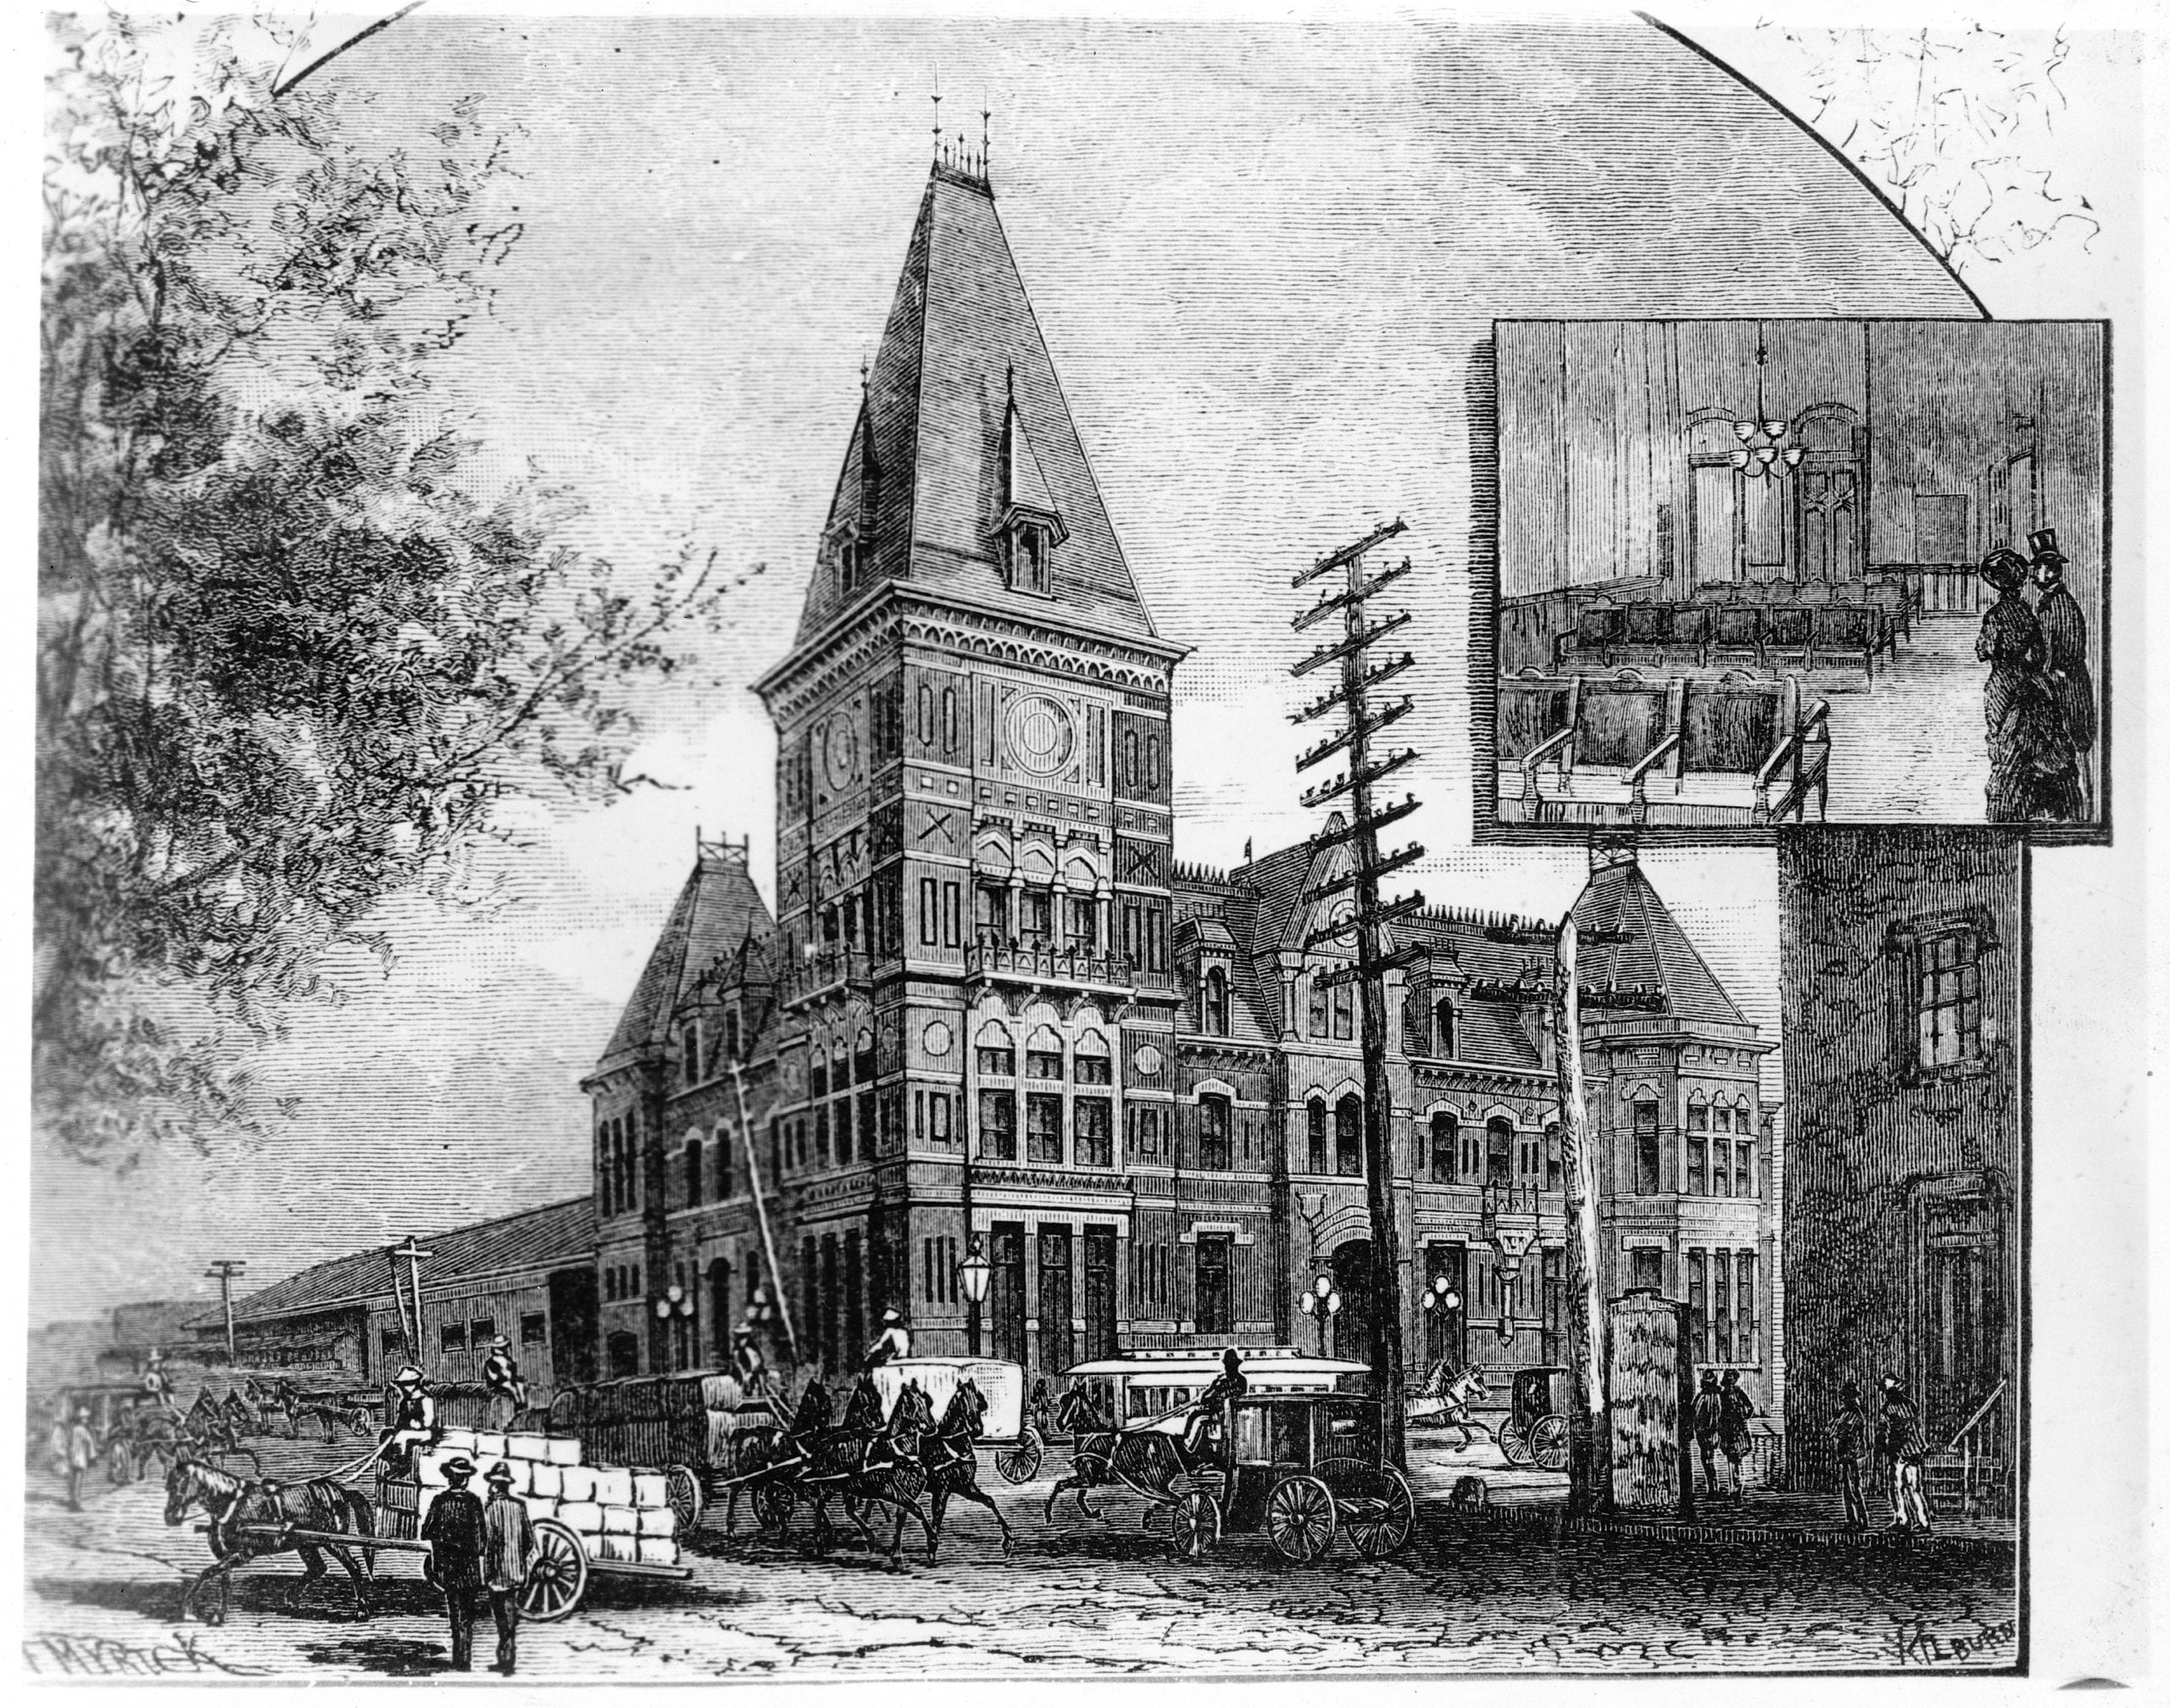 Exterior of old Pennsylvania Station, 6th & B Streets, N.W., Washington, D.C., as it appeared in the 1880's showing street traffic in front and insert of interior